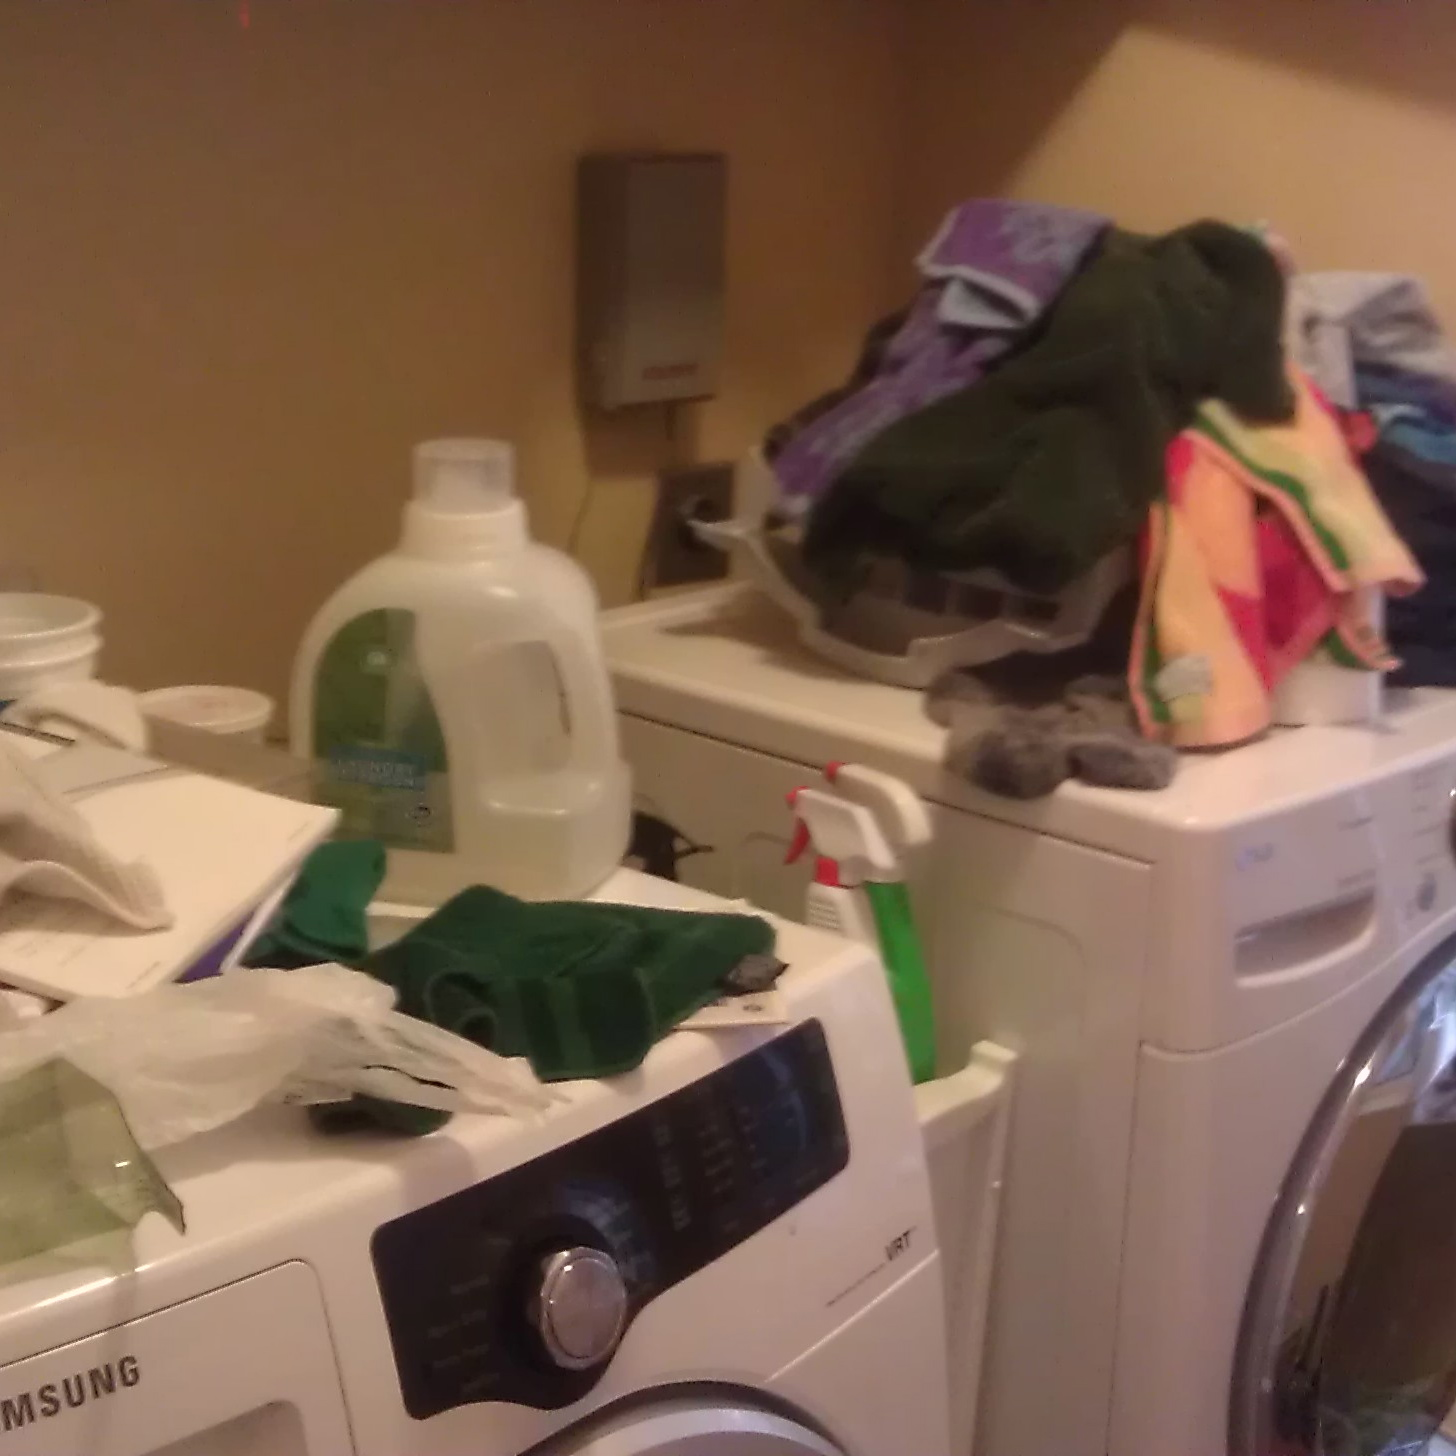 A Laundry Room Comes Clean